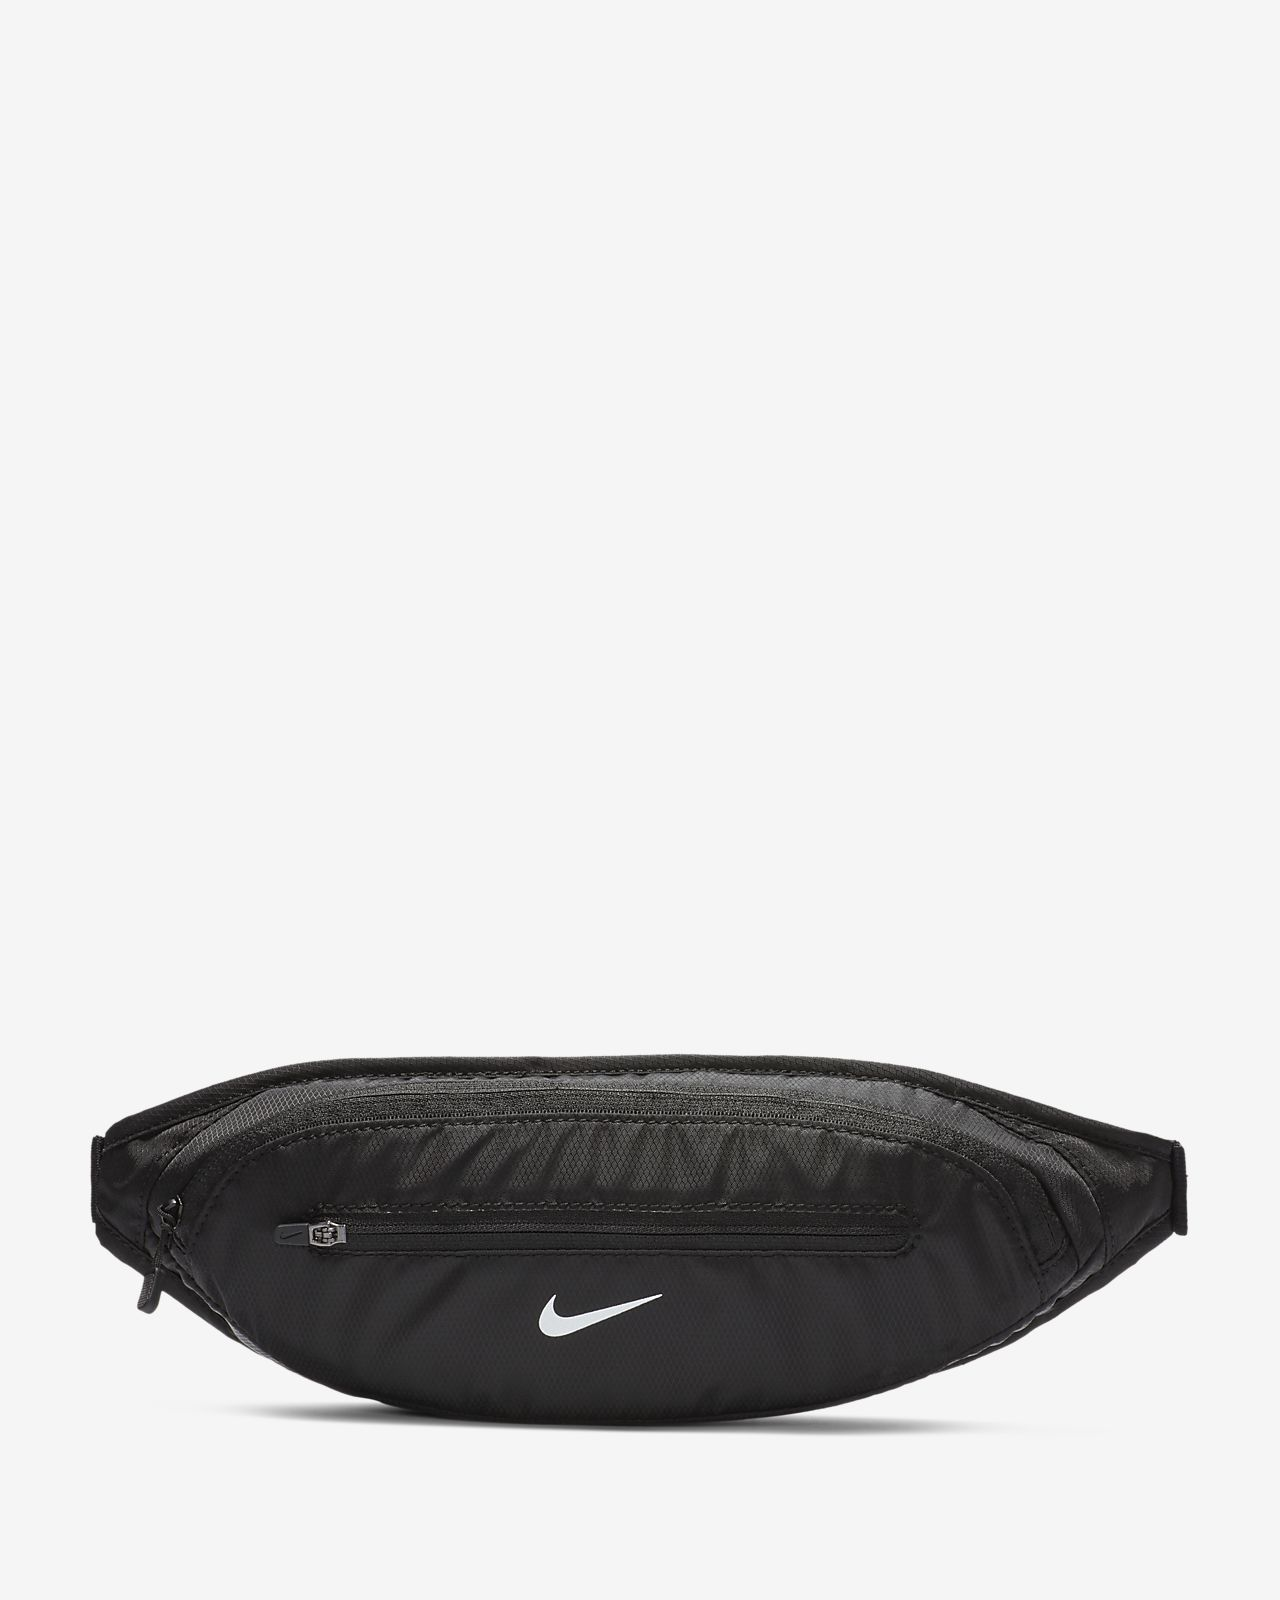 Nike Hip Pack 2.0 (Large)